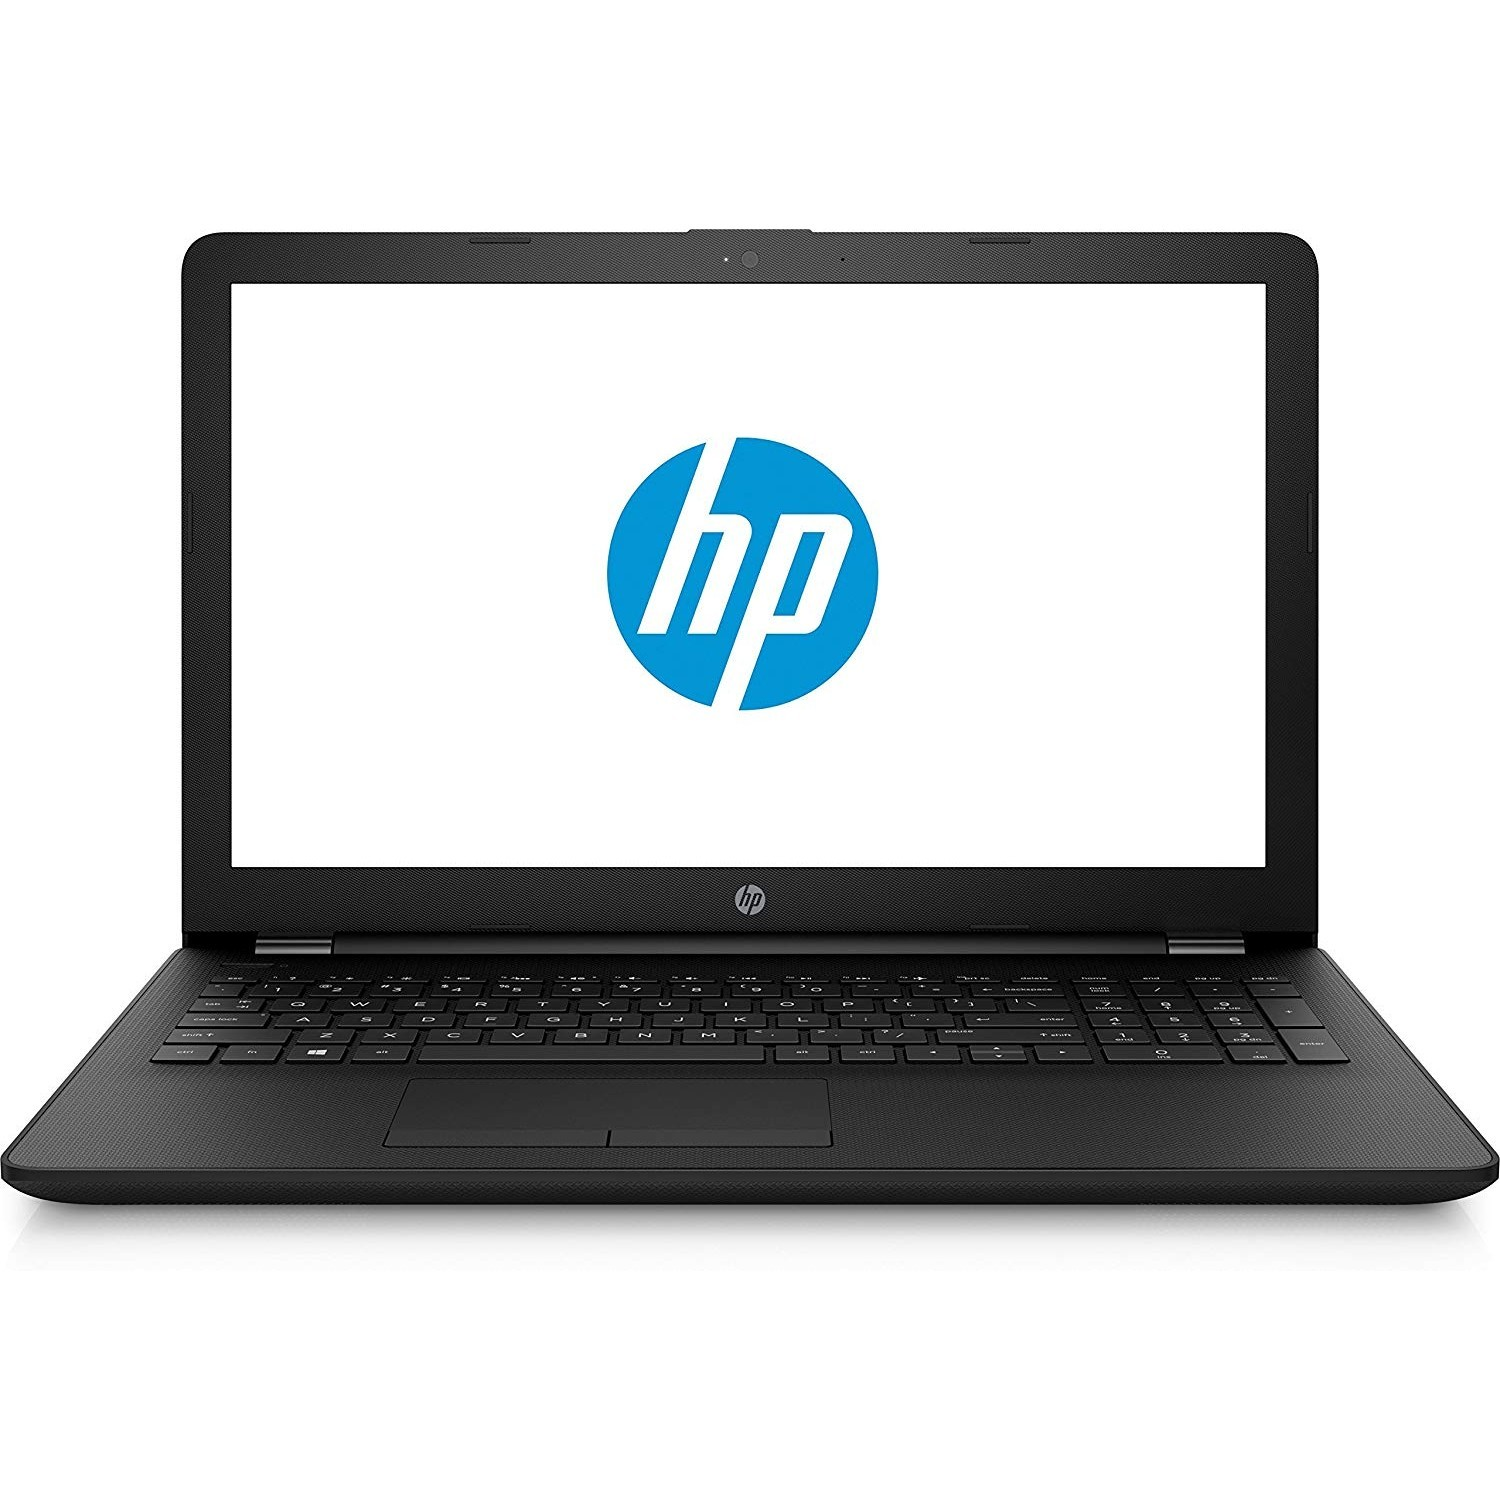 "HP 15-BS151NT 3XY33EA I3-5005U 4GB 500GB O/B VGA 15.6"" FREEDOS NOTEBOOK"